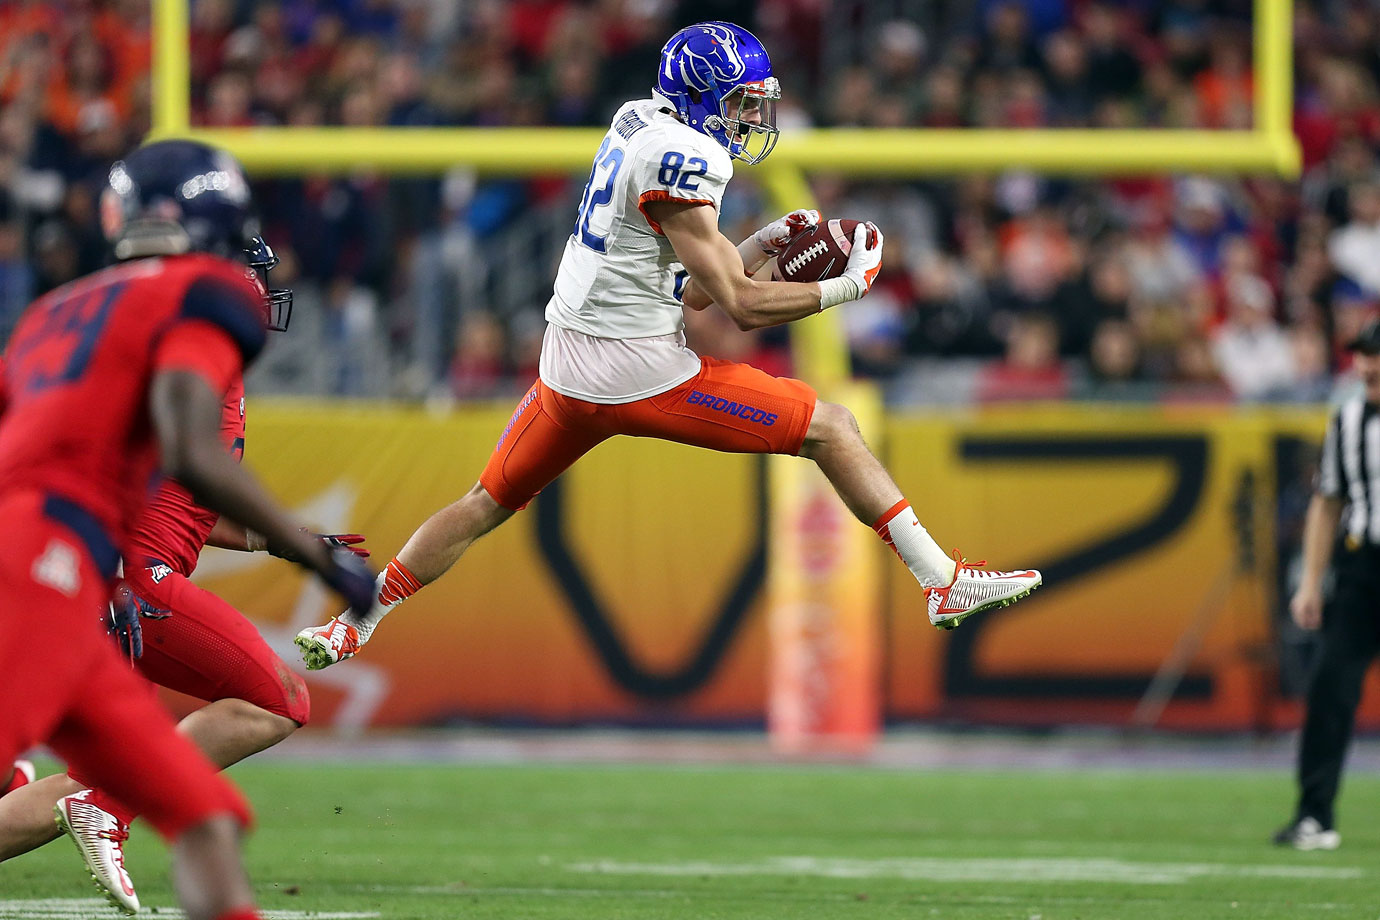 The receiver helped the Broncos upset Arizona in the Fiesta Bowl with 12 catches for 199 yards.